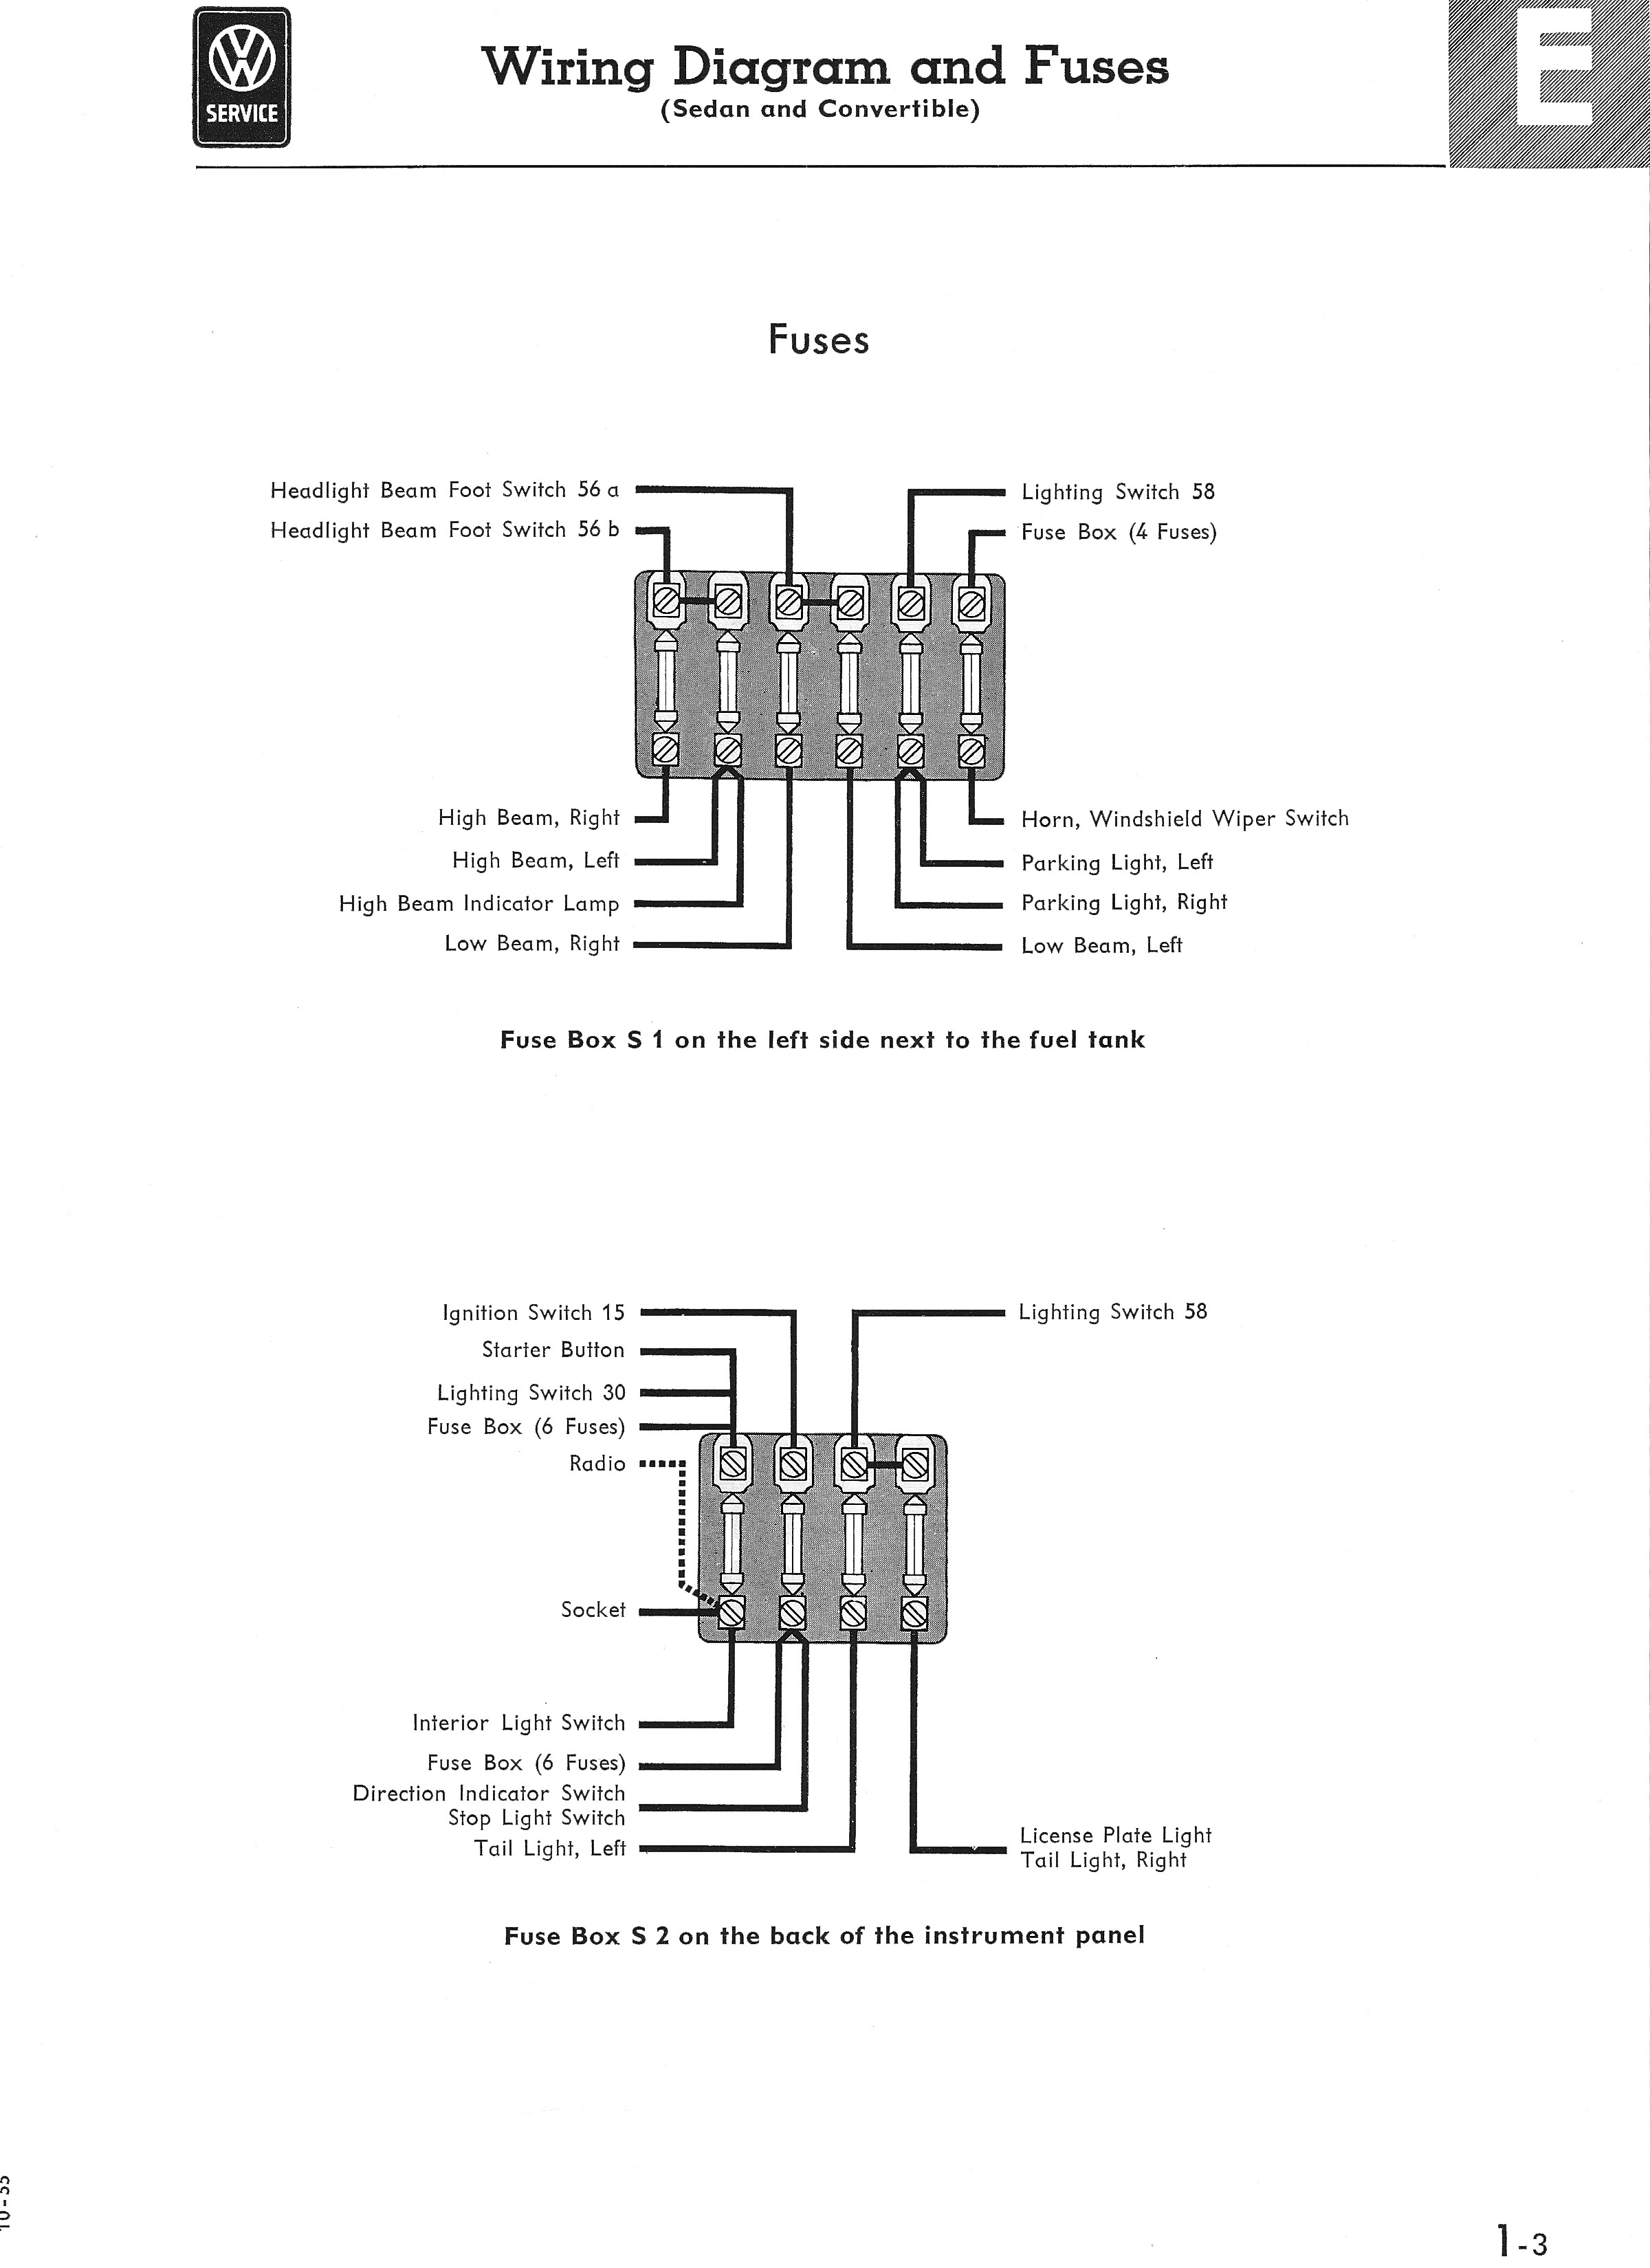 1977 Dodge Fuse Box Diagram Detailed Schematic Diagrams Durango Thesamba Com Type 1 Wiring 2001